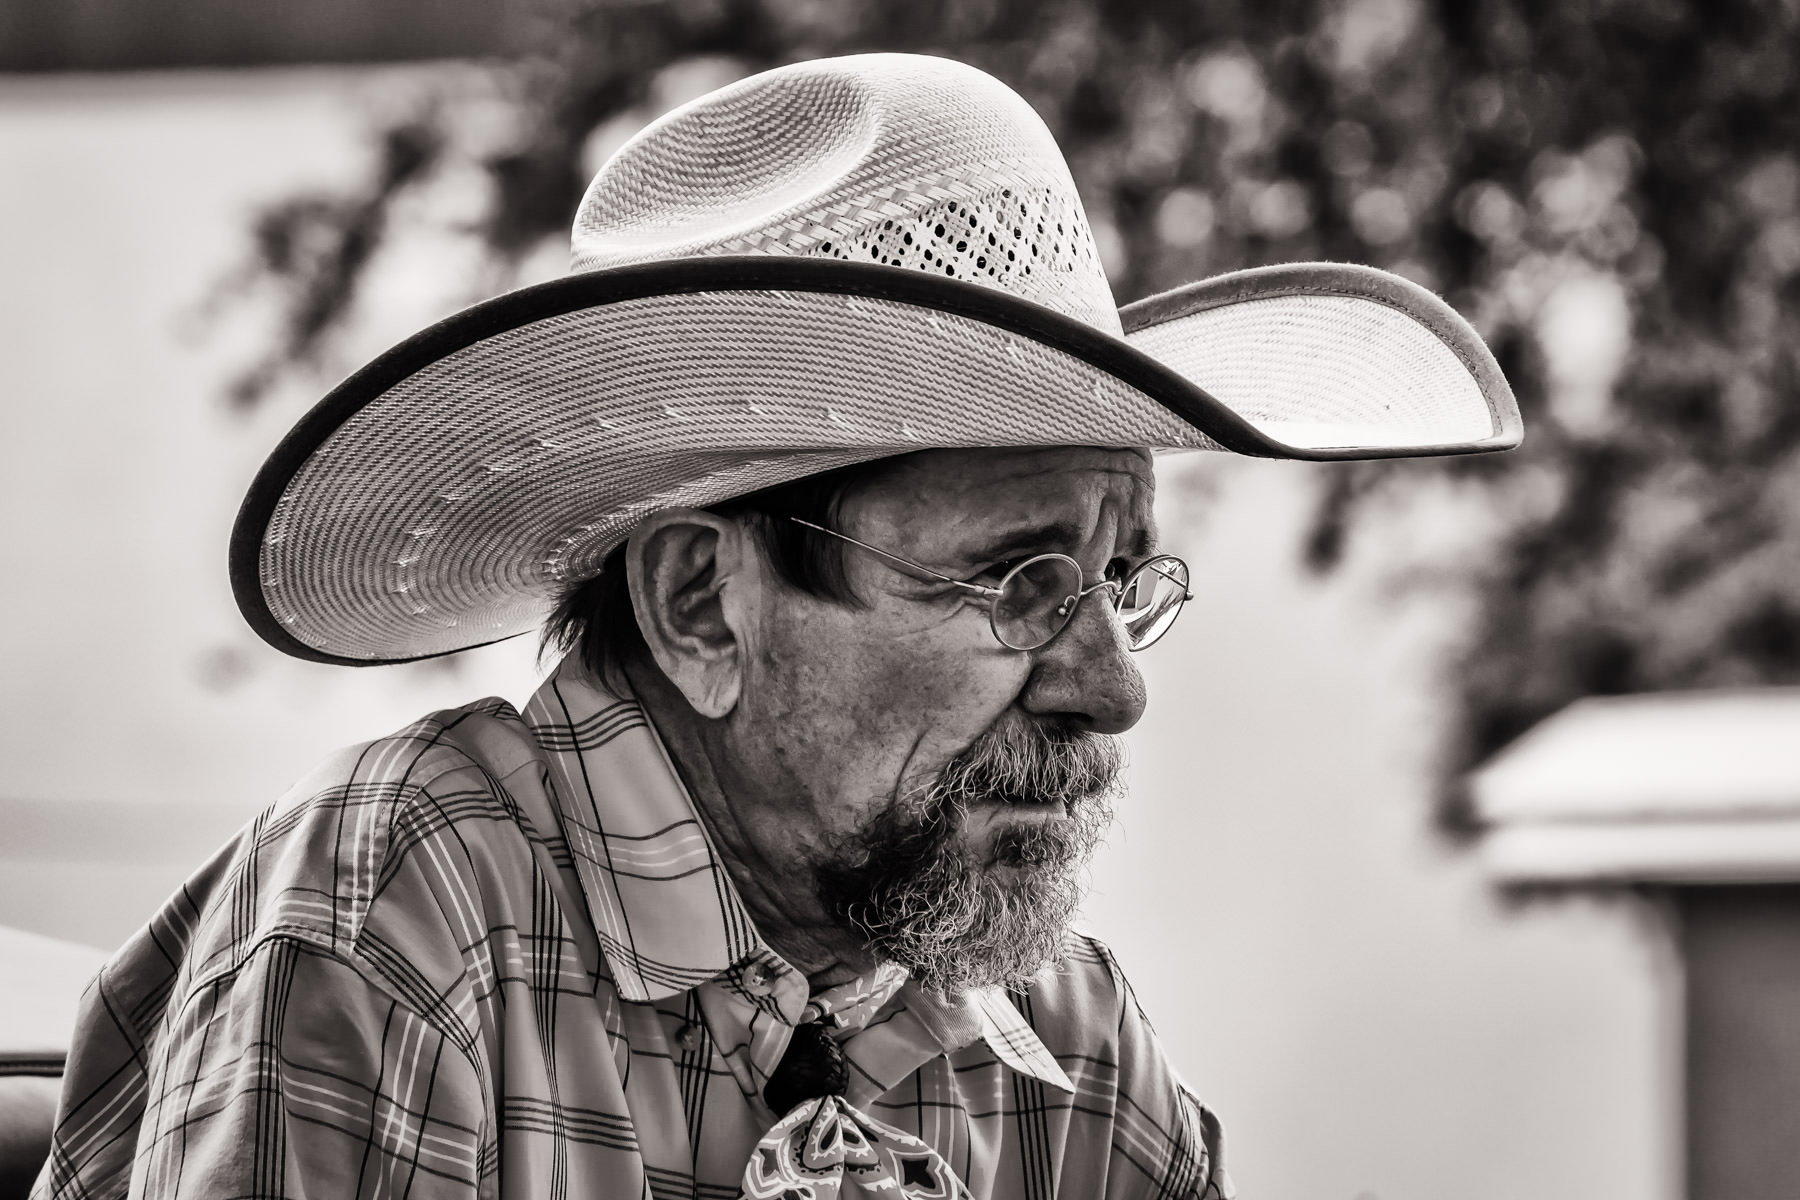 An old cowboy at the Fort Worth Stockyards, Texas.